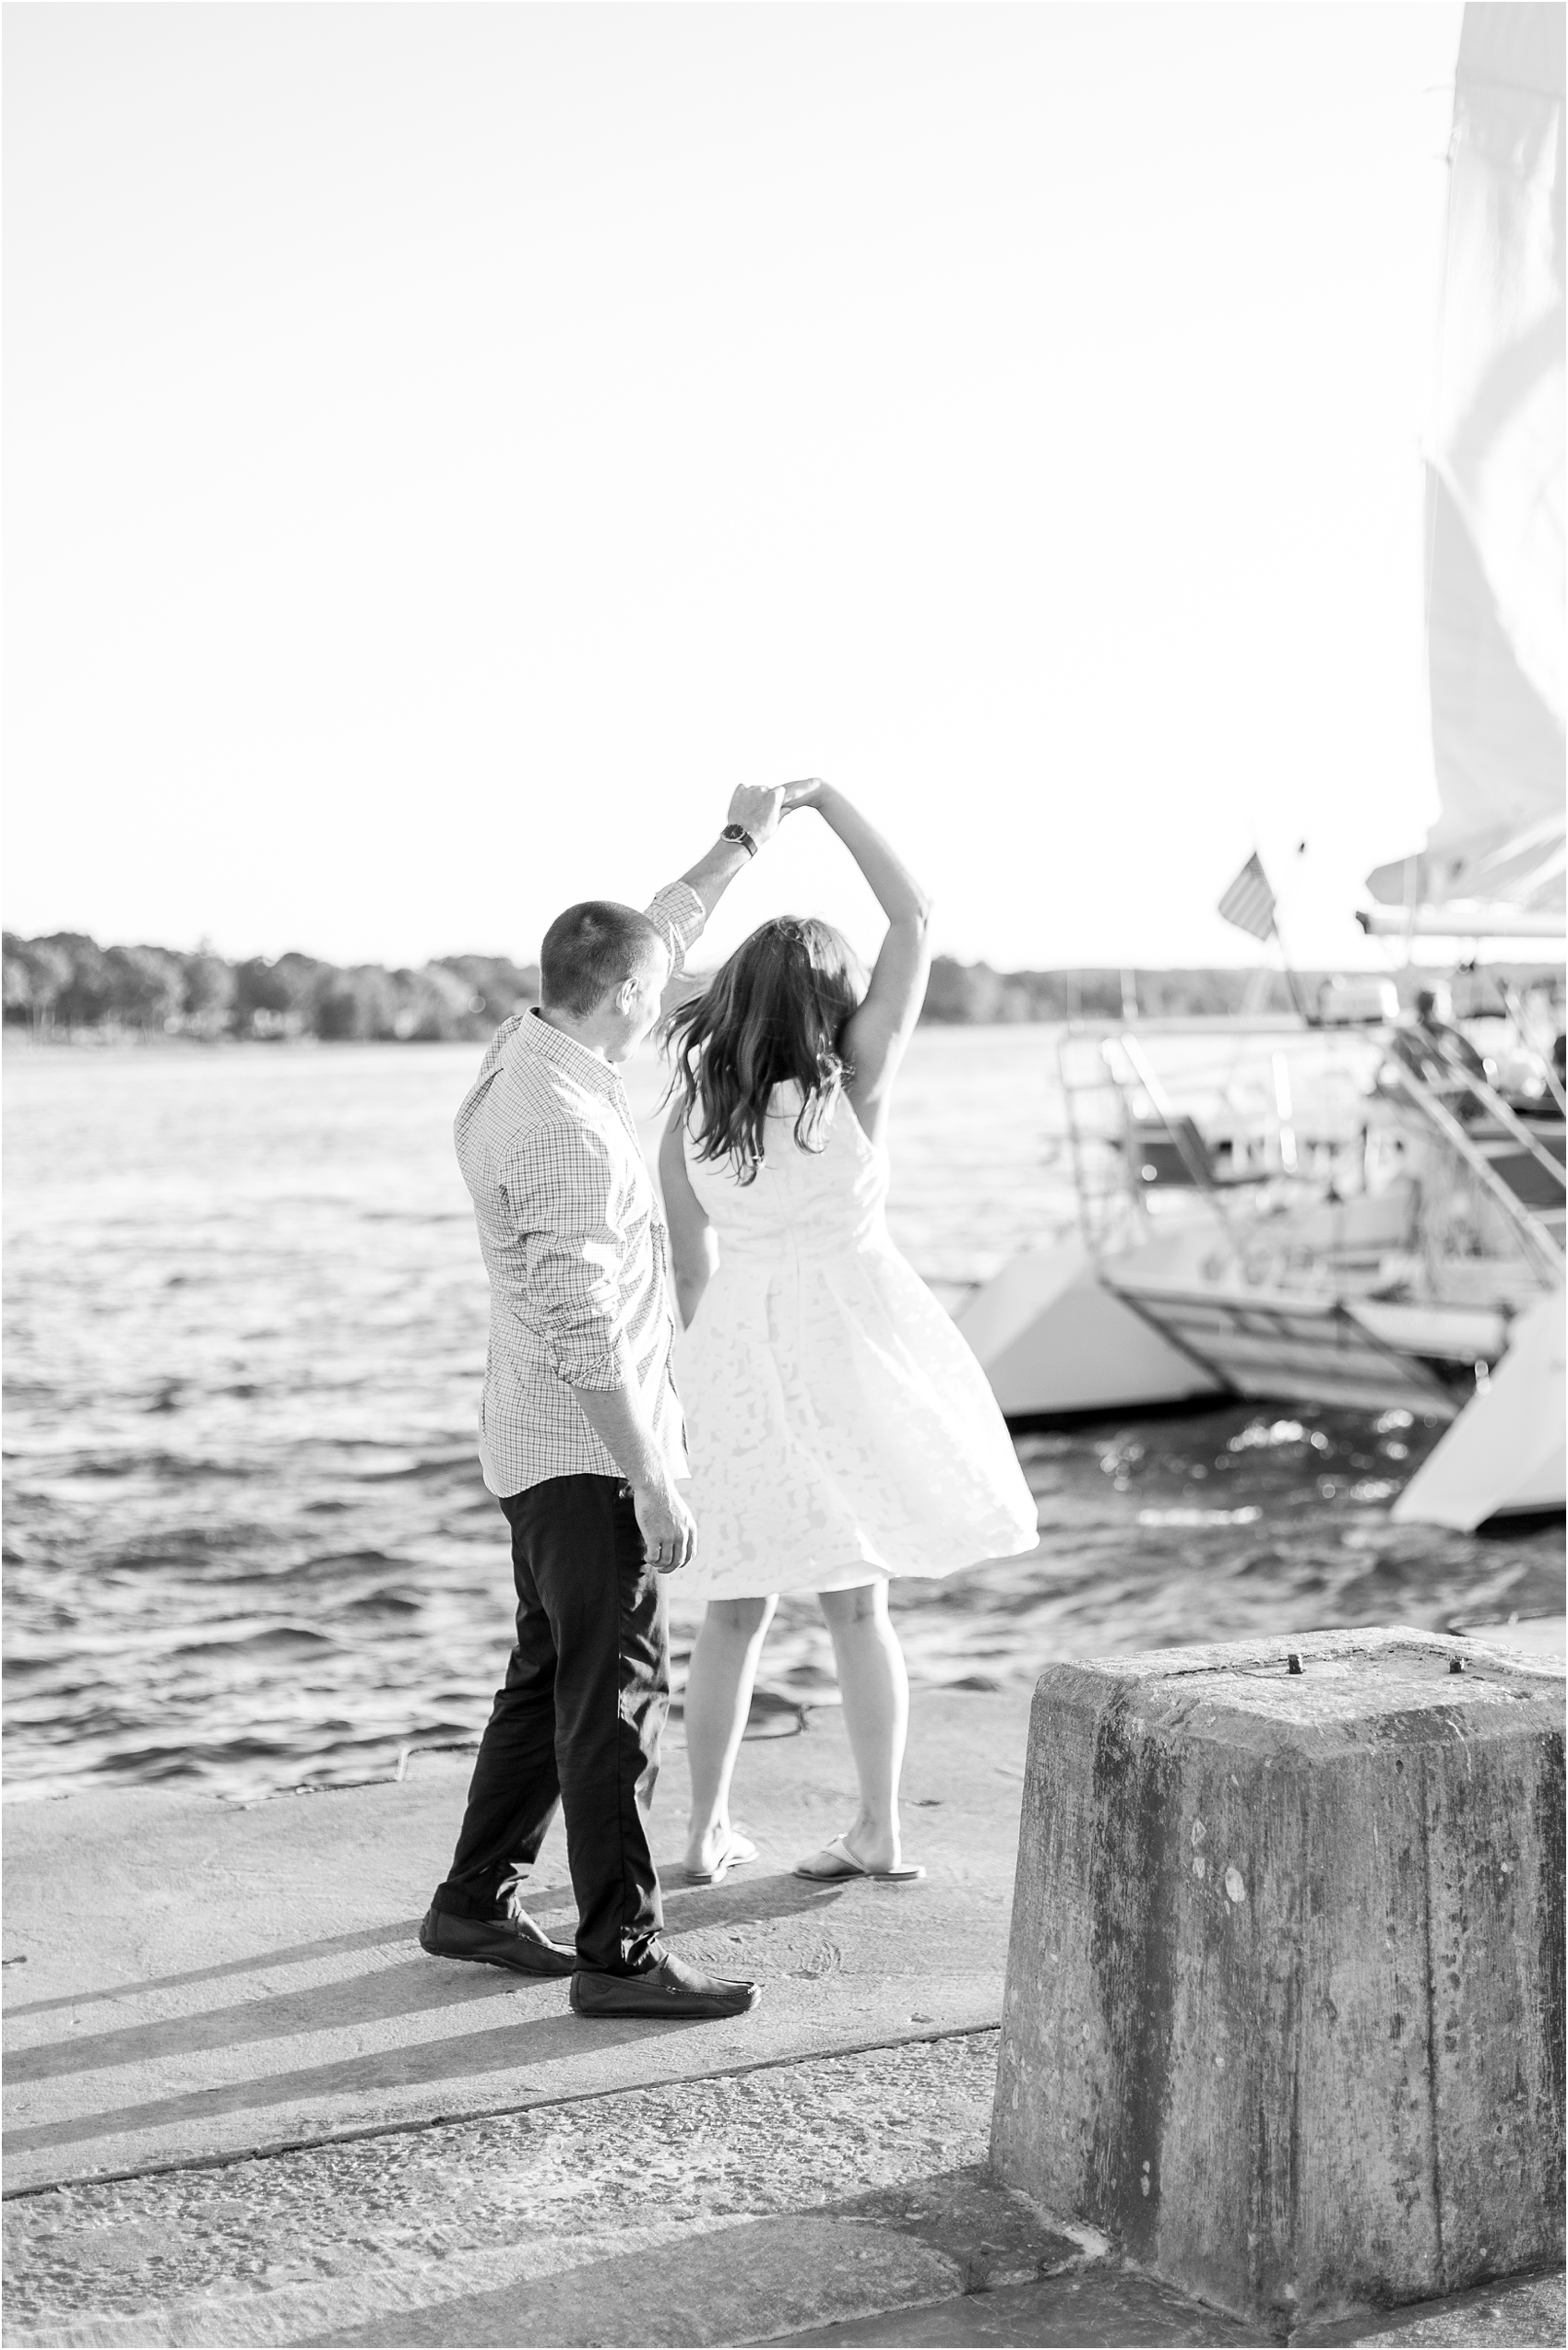 romantic-sunset-engagement-photos-at-the-lighthouse-in-charlevoix-mi-by-courtney-carolyn-photography_0008.jpg